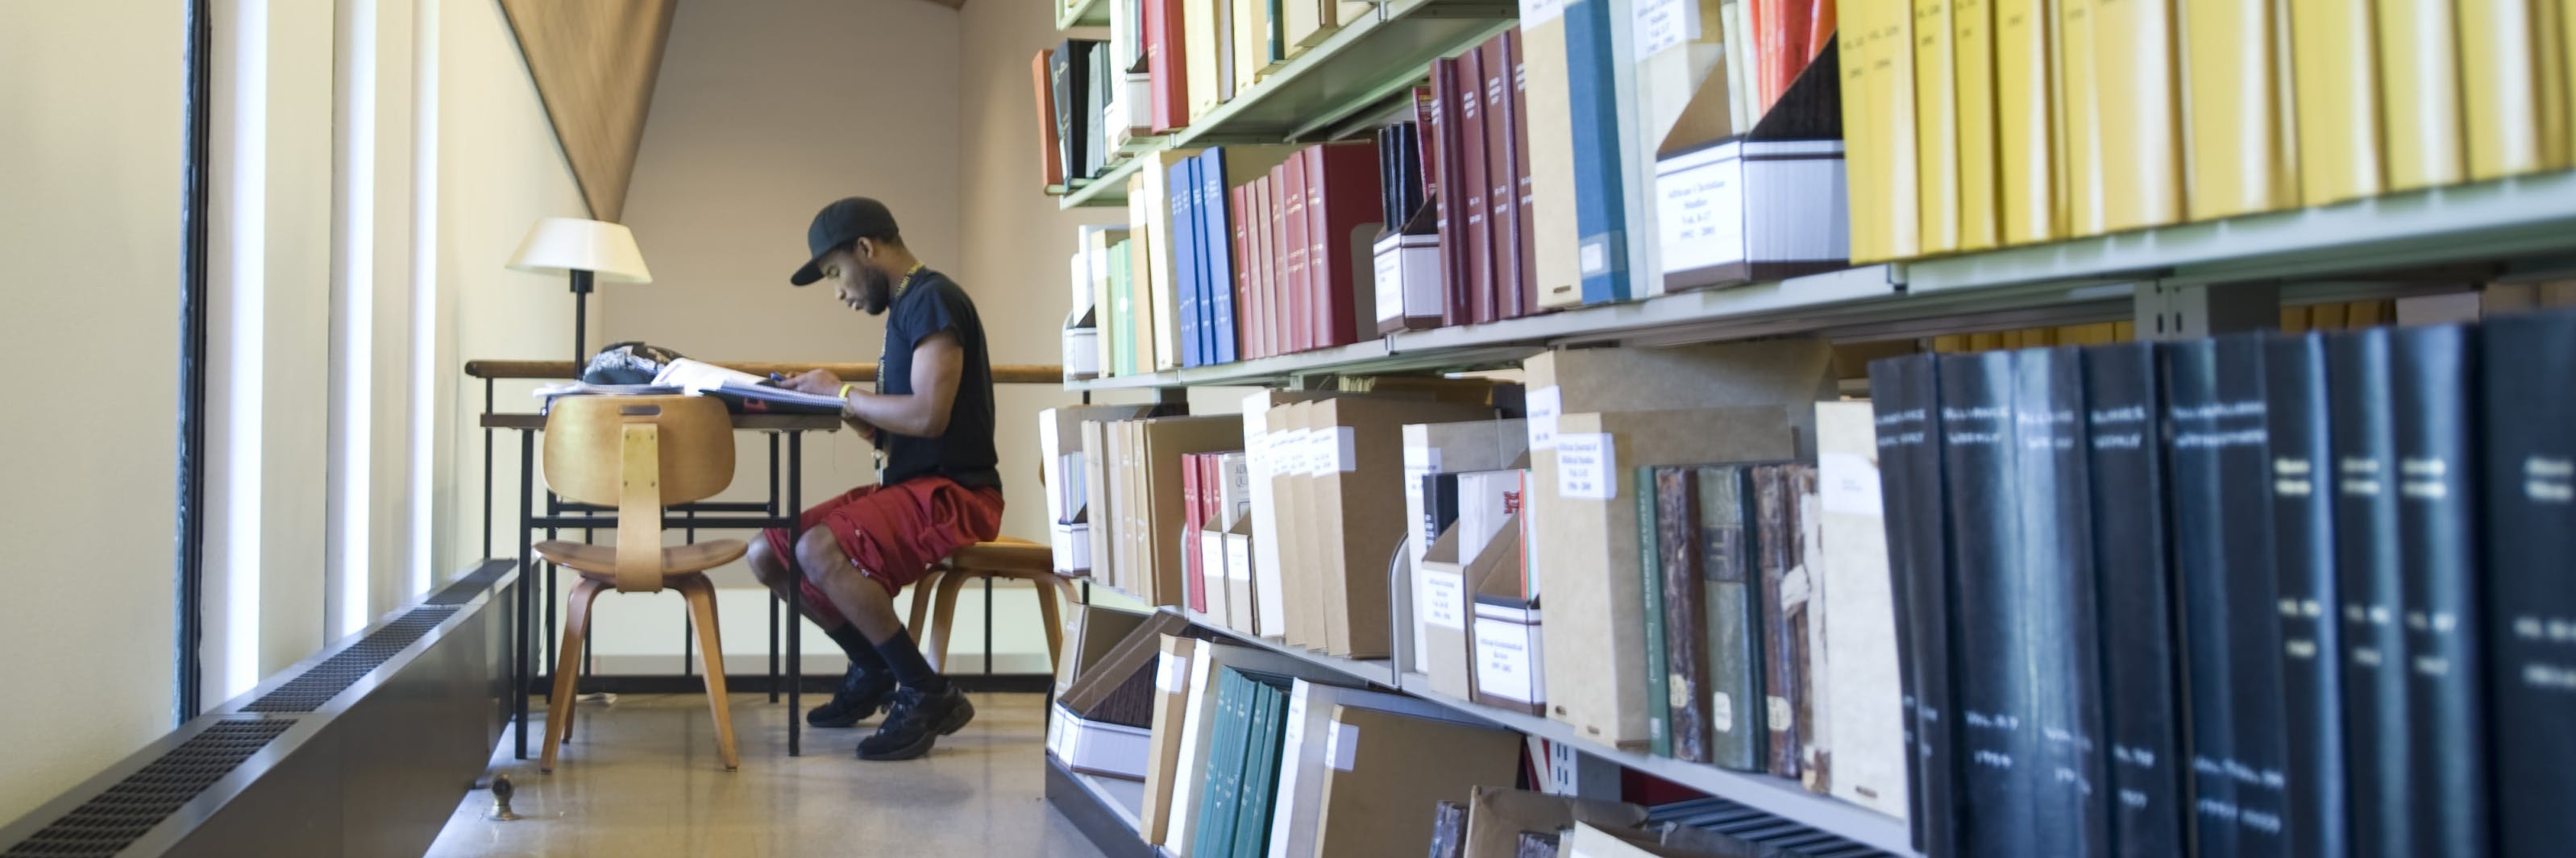 Student studying in the Seminary library.